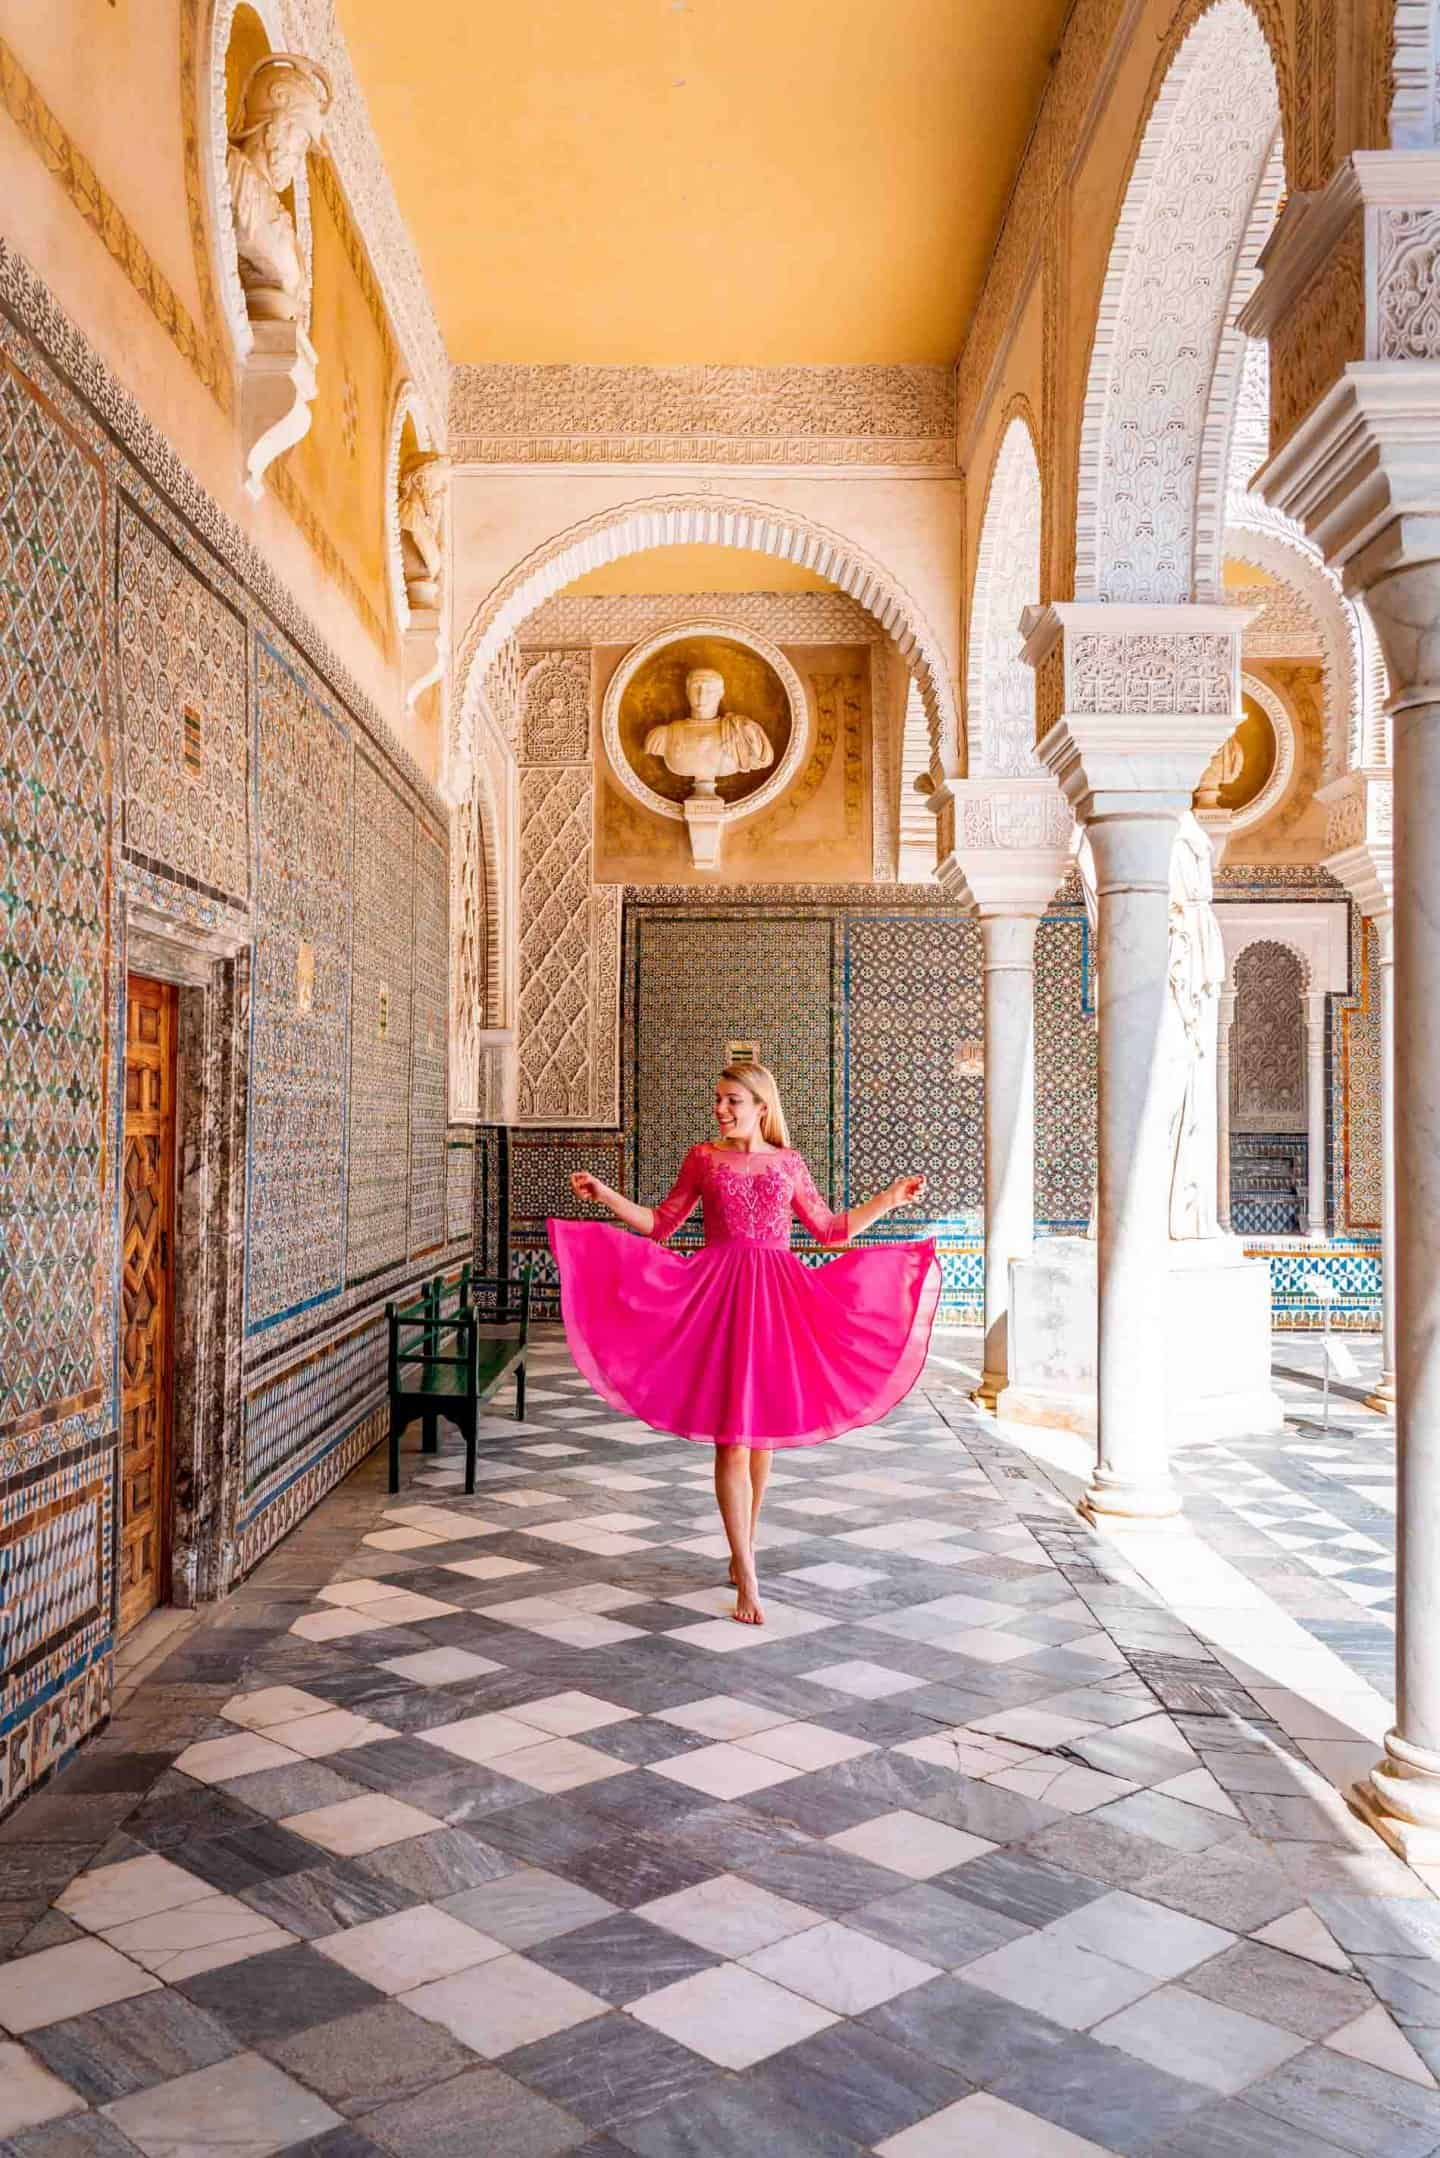 Girl in a pink dress in the courtyard of Casa de Pilatos Seville